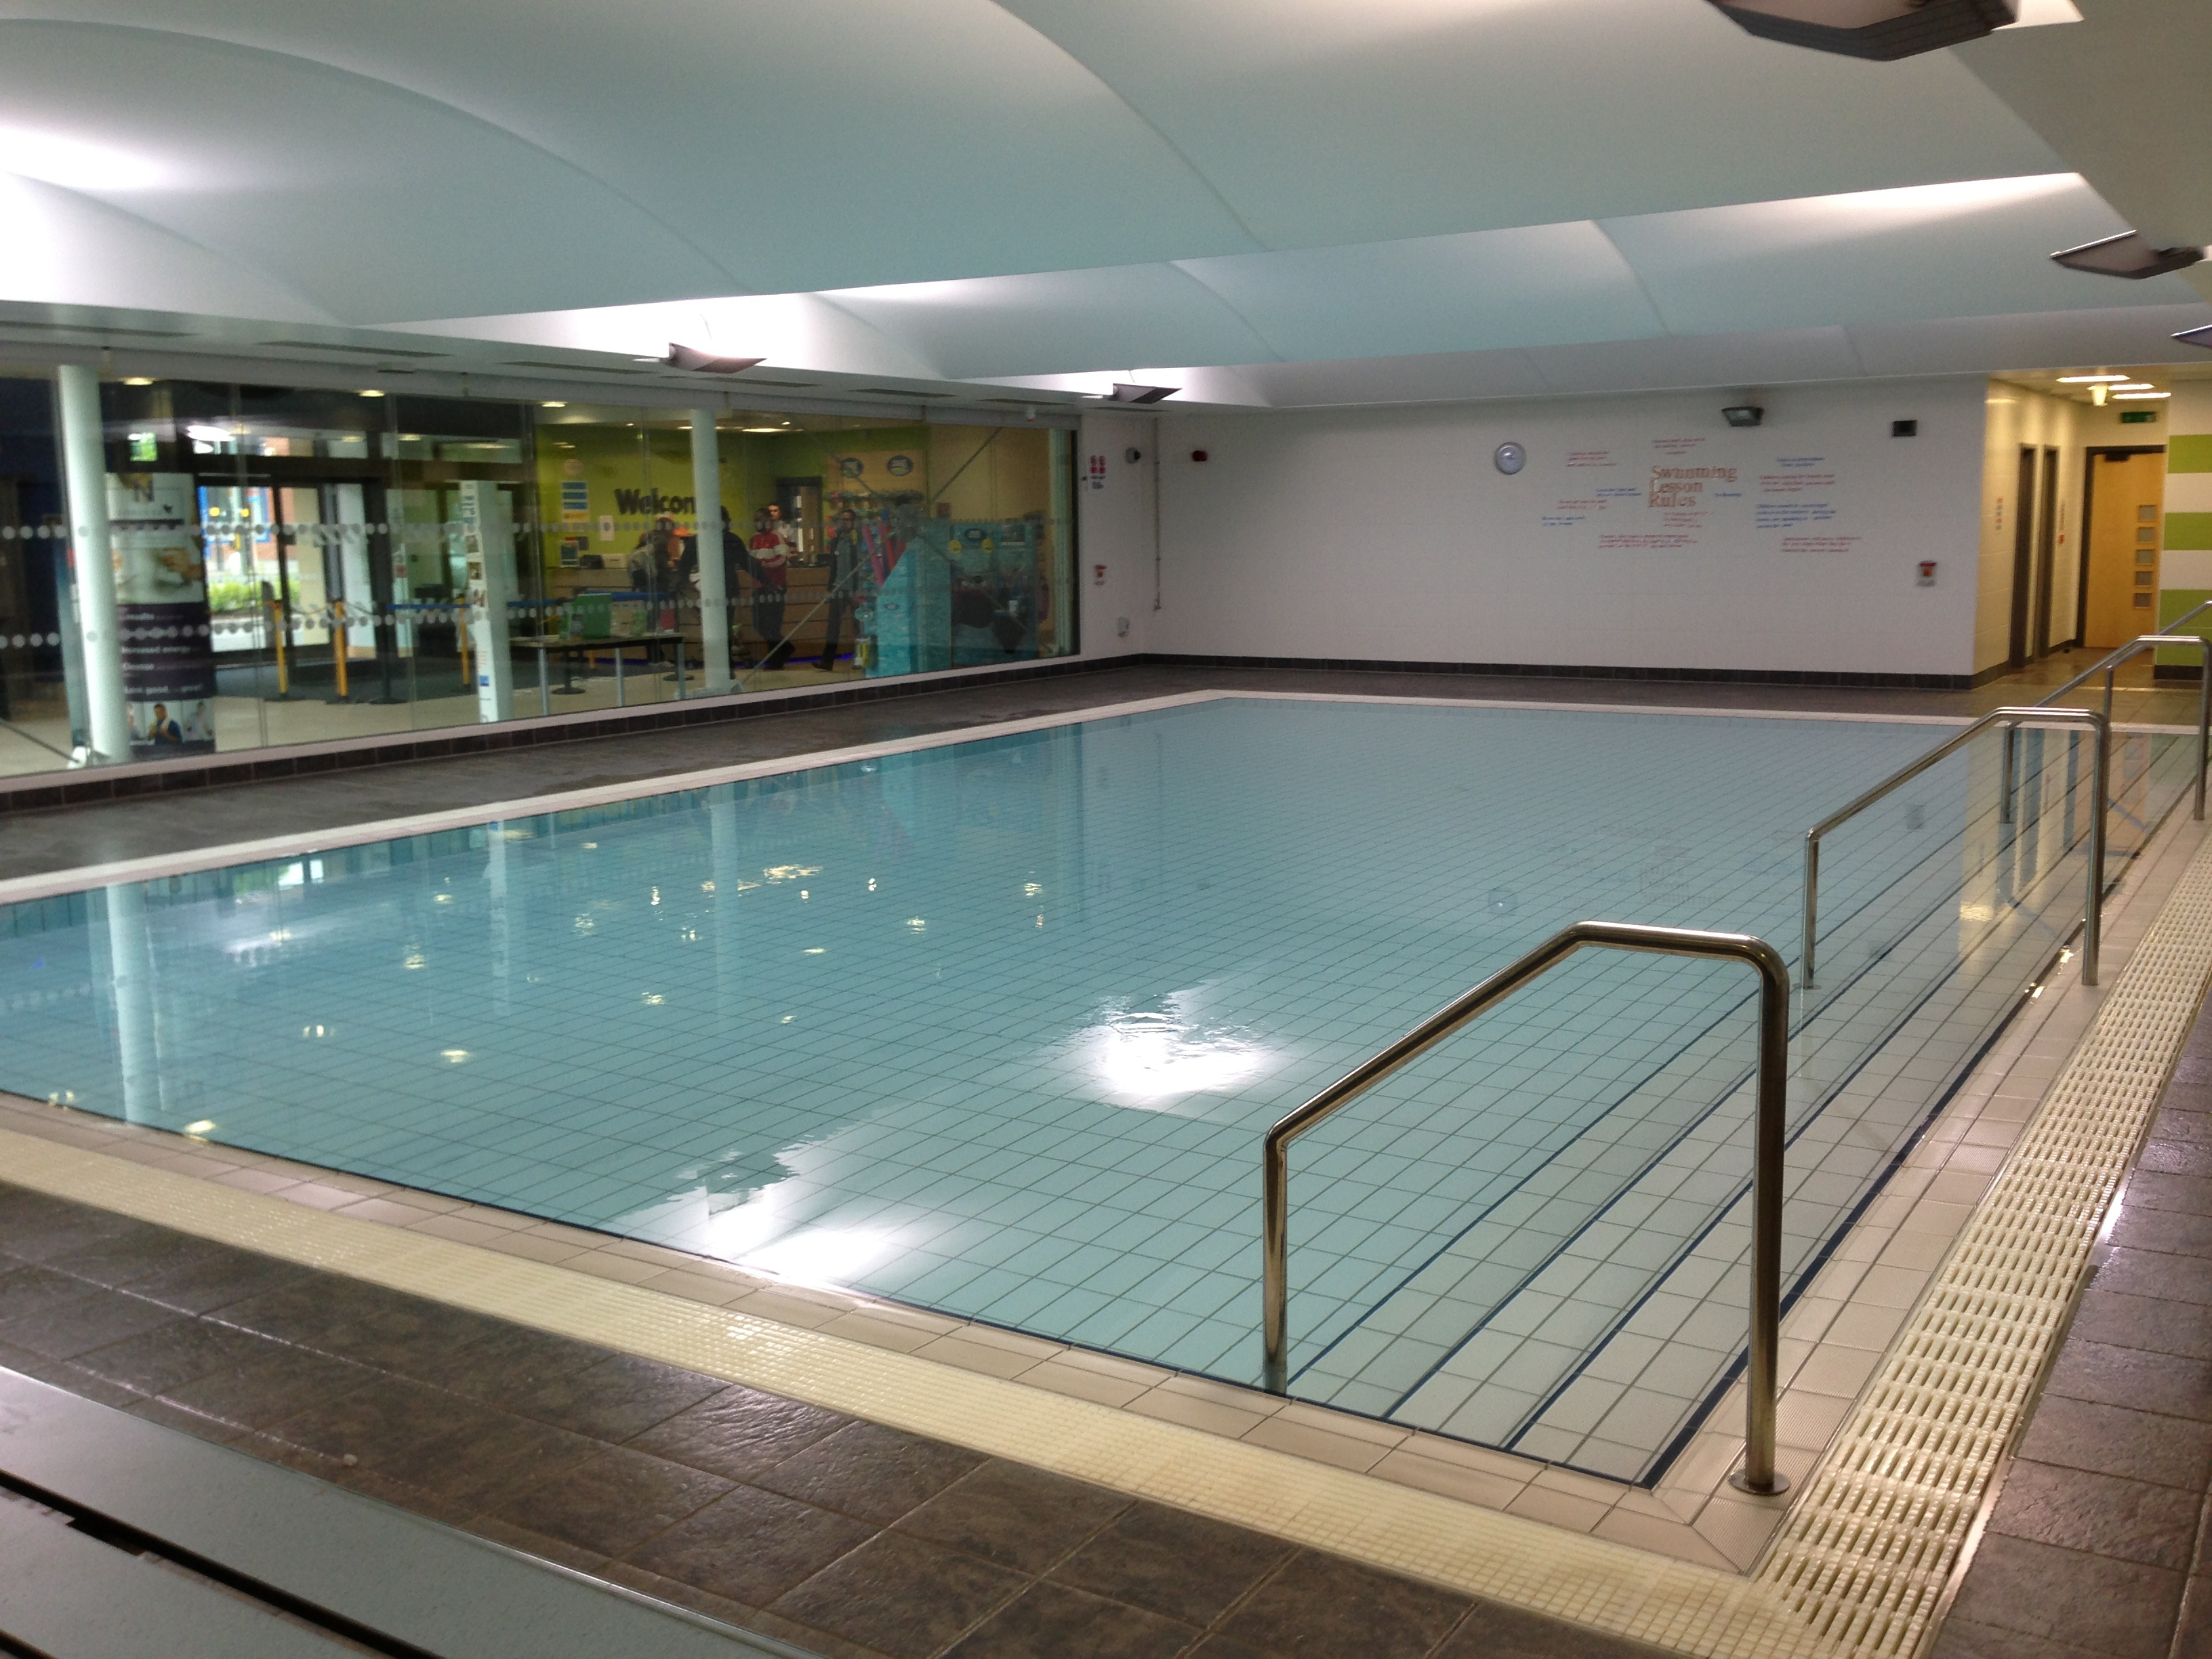 Harborne Pool And Fitness Centre Birmingham